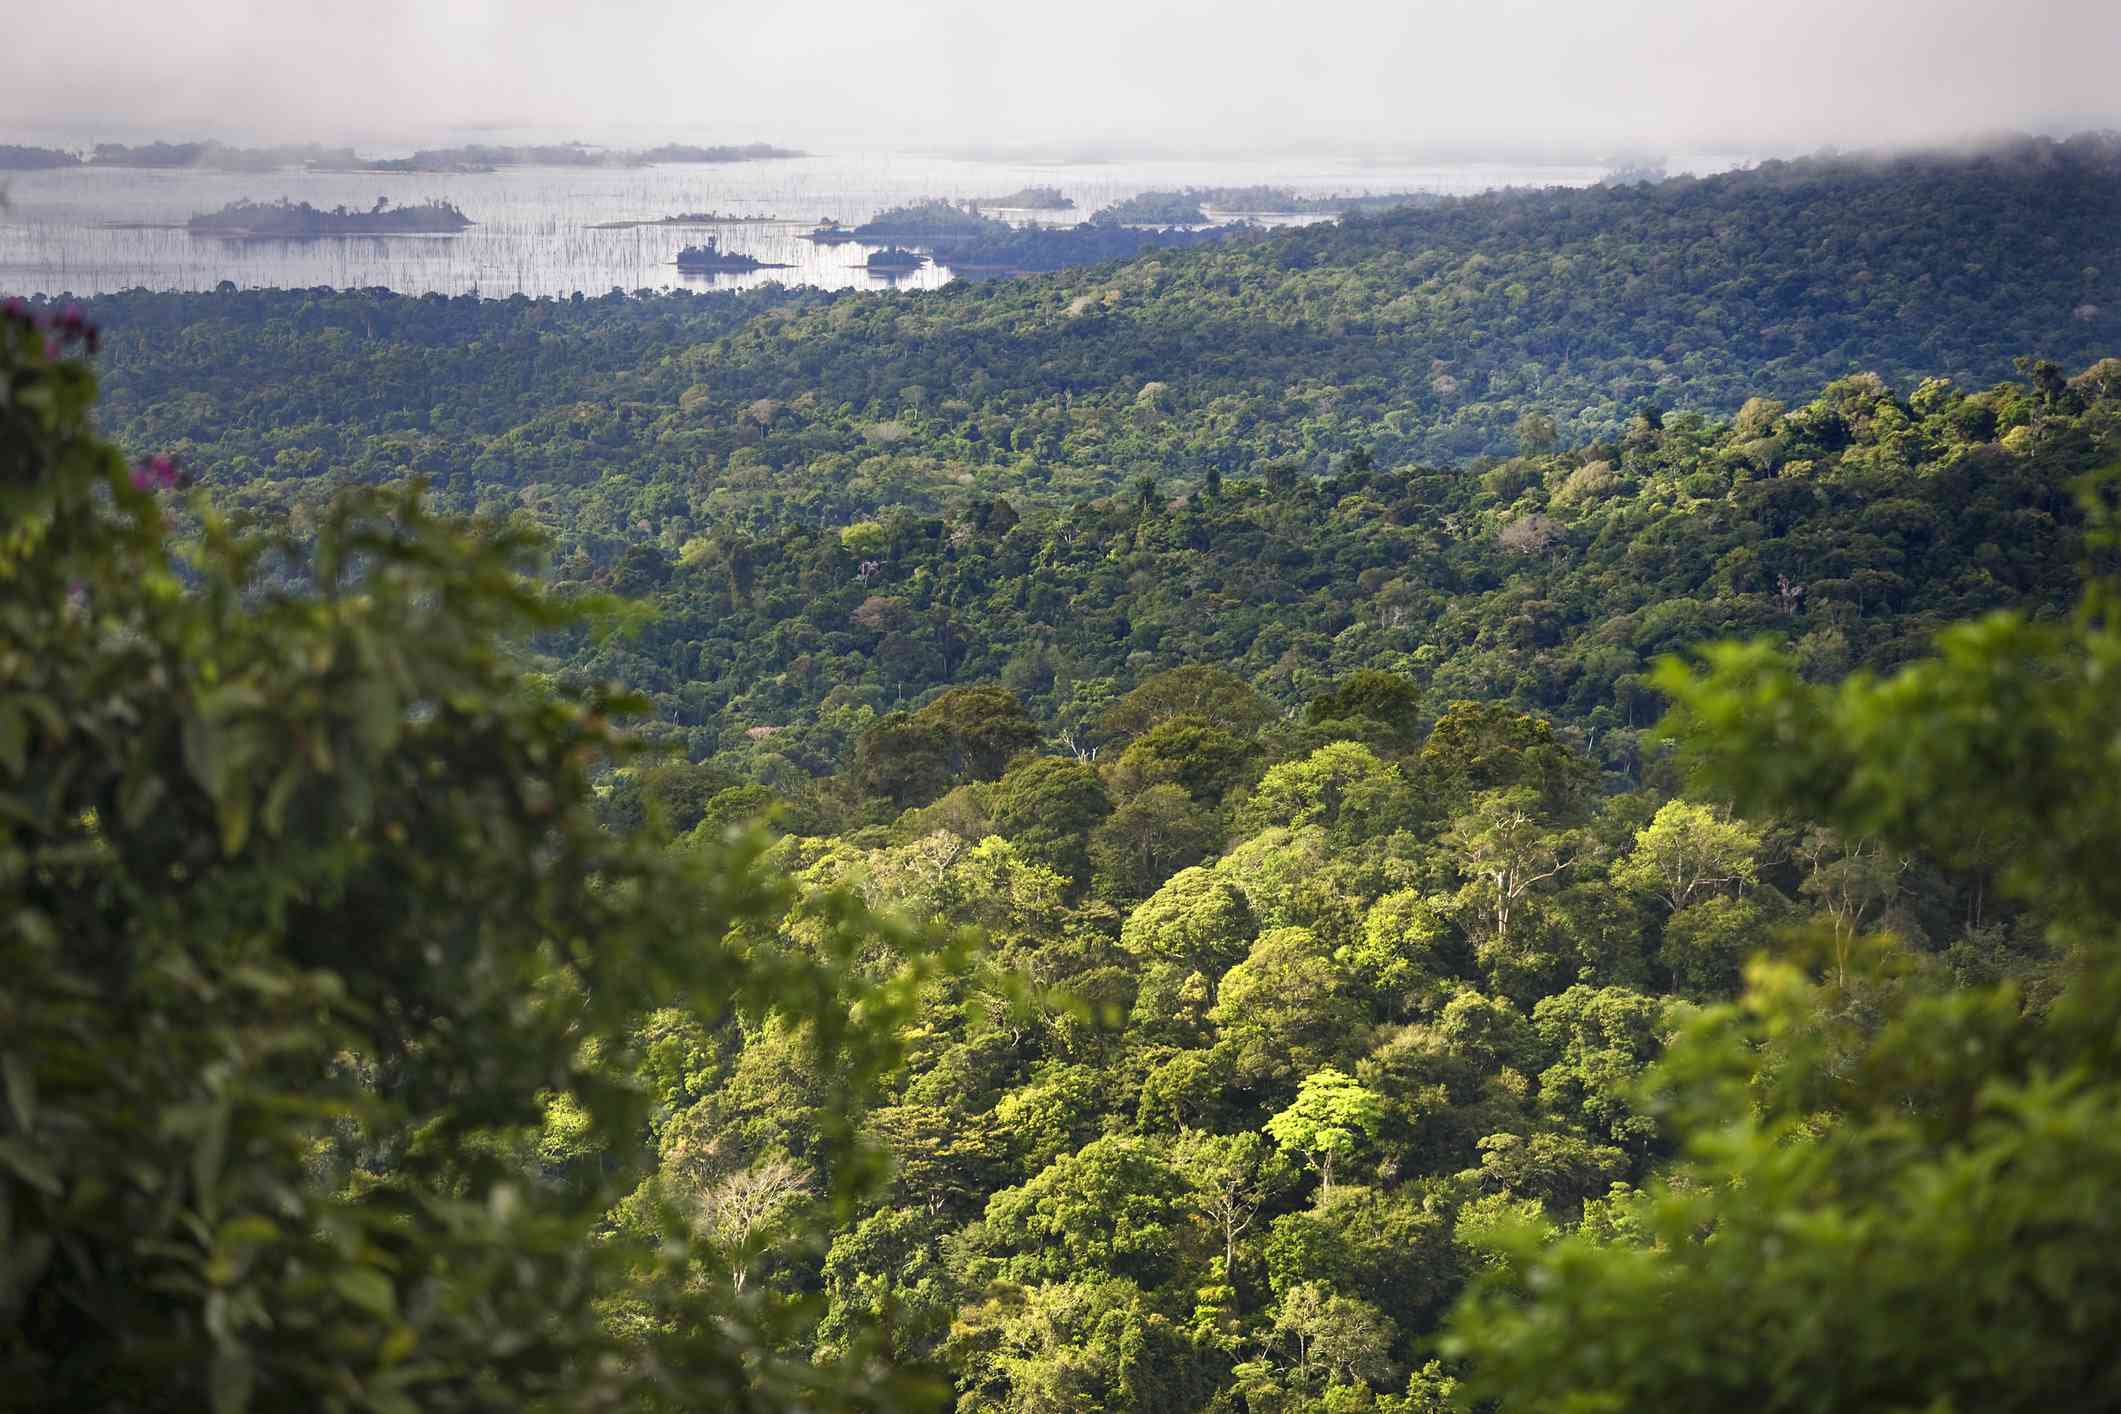 Aerial view of Suriname rainforest and lake